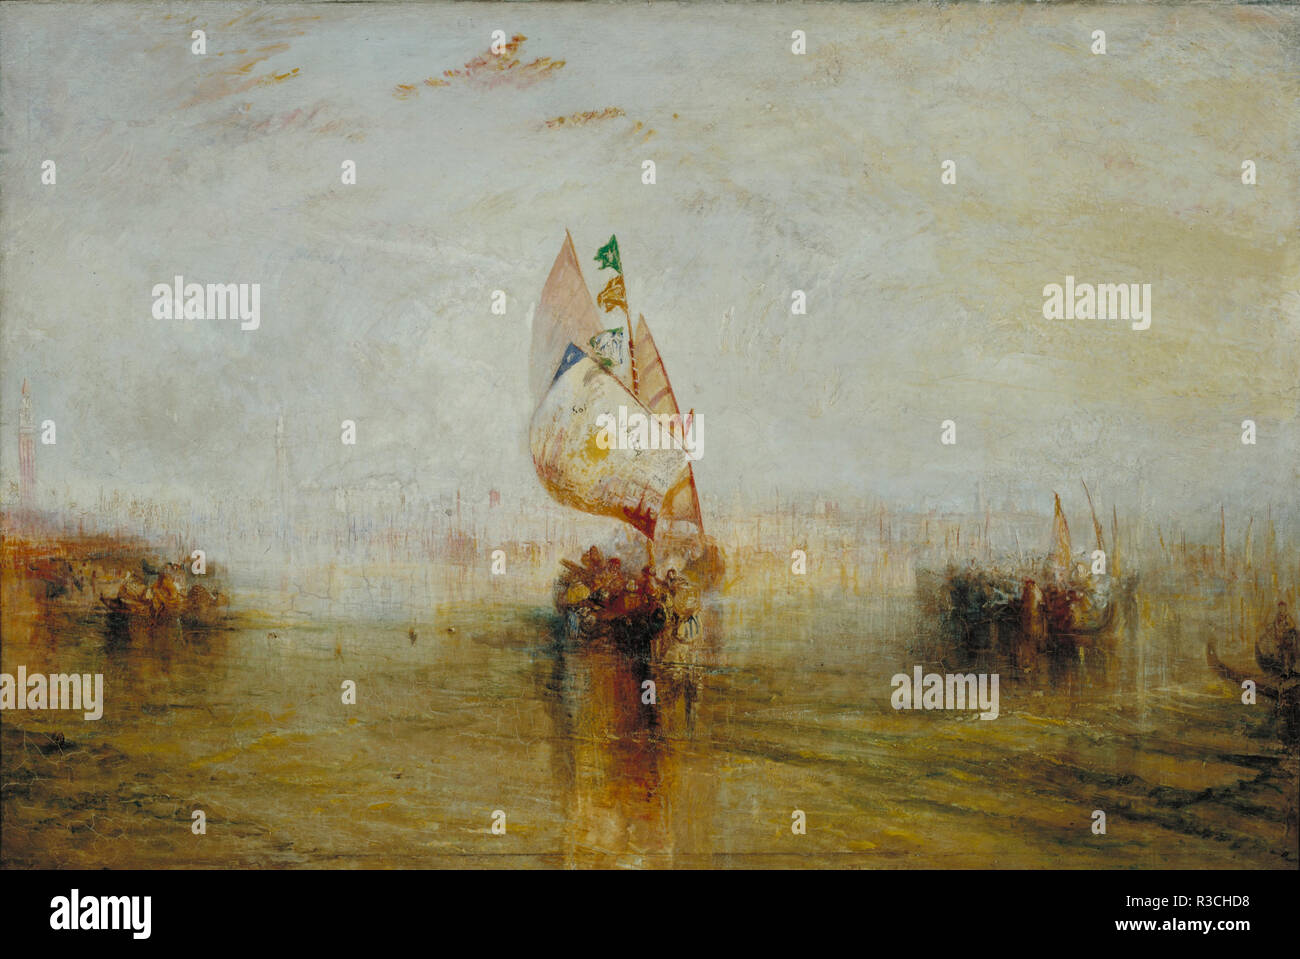 The Sun of Venice Going to Sea. Date/Period: 1843. Painting. Oil on canvas. Height: 616 cm (20.2 ft); Width: 921 cm (10 yd). Author: J. M. W. Turner. TURNER, JOSEPH MALLORD WILLIAM. Stock Photo